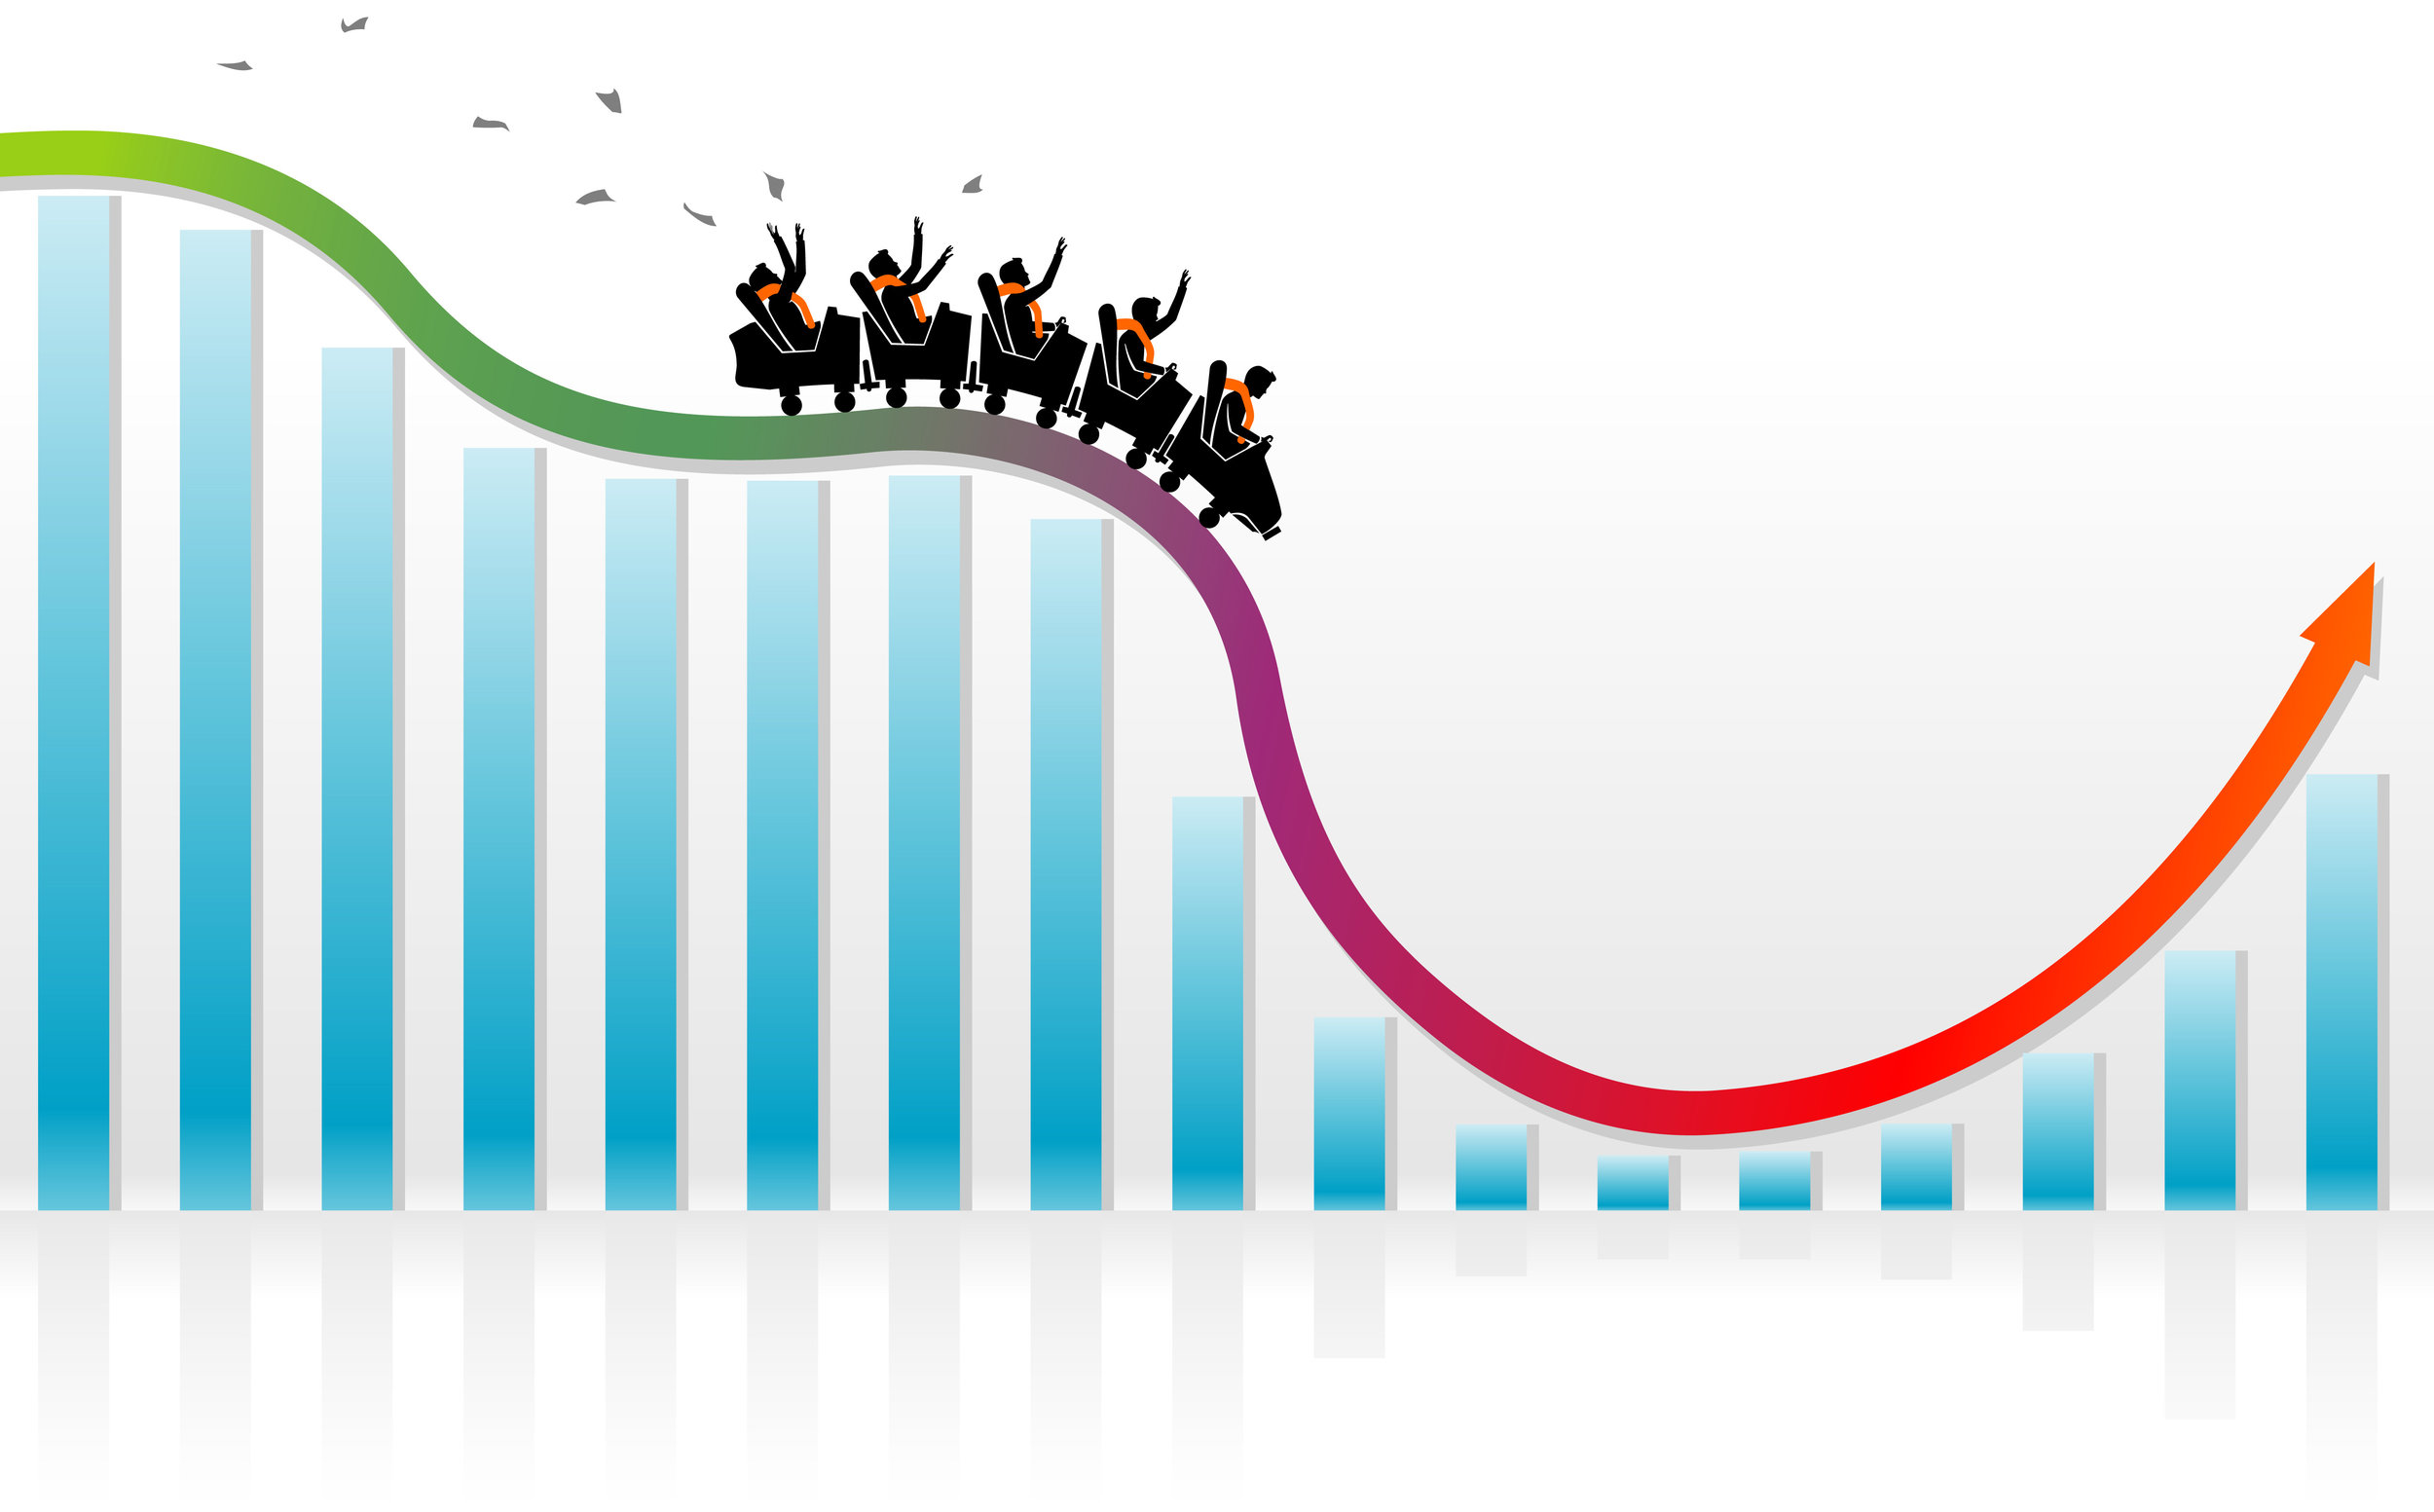 How To Invest For The Long Term In A Turbulent Market Behavioral Value Investor